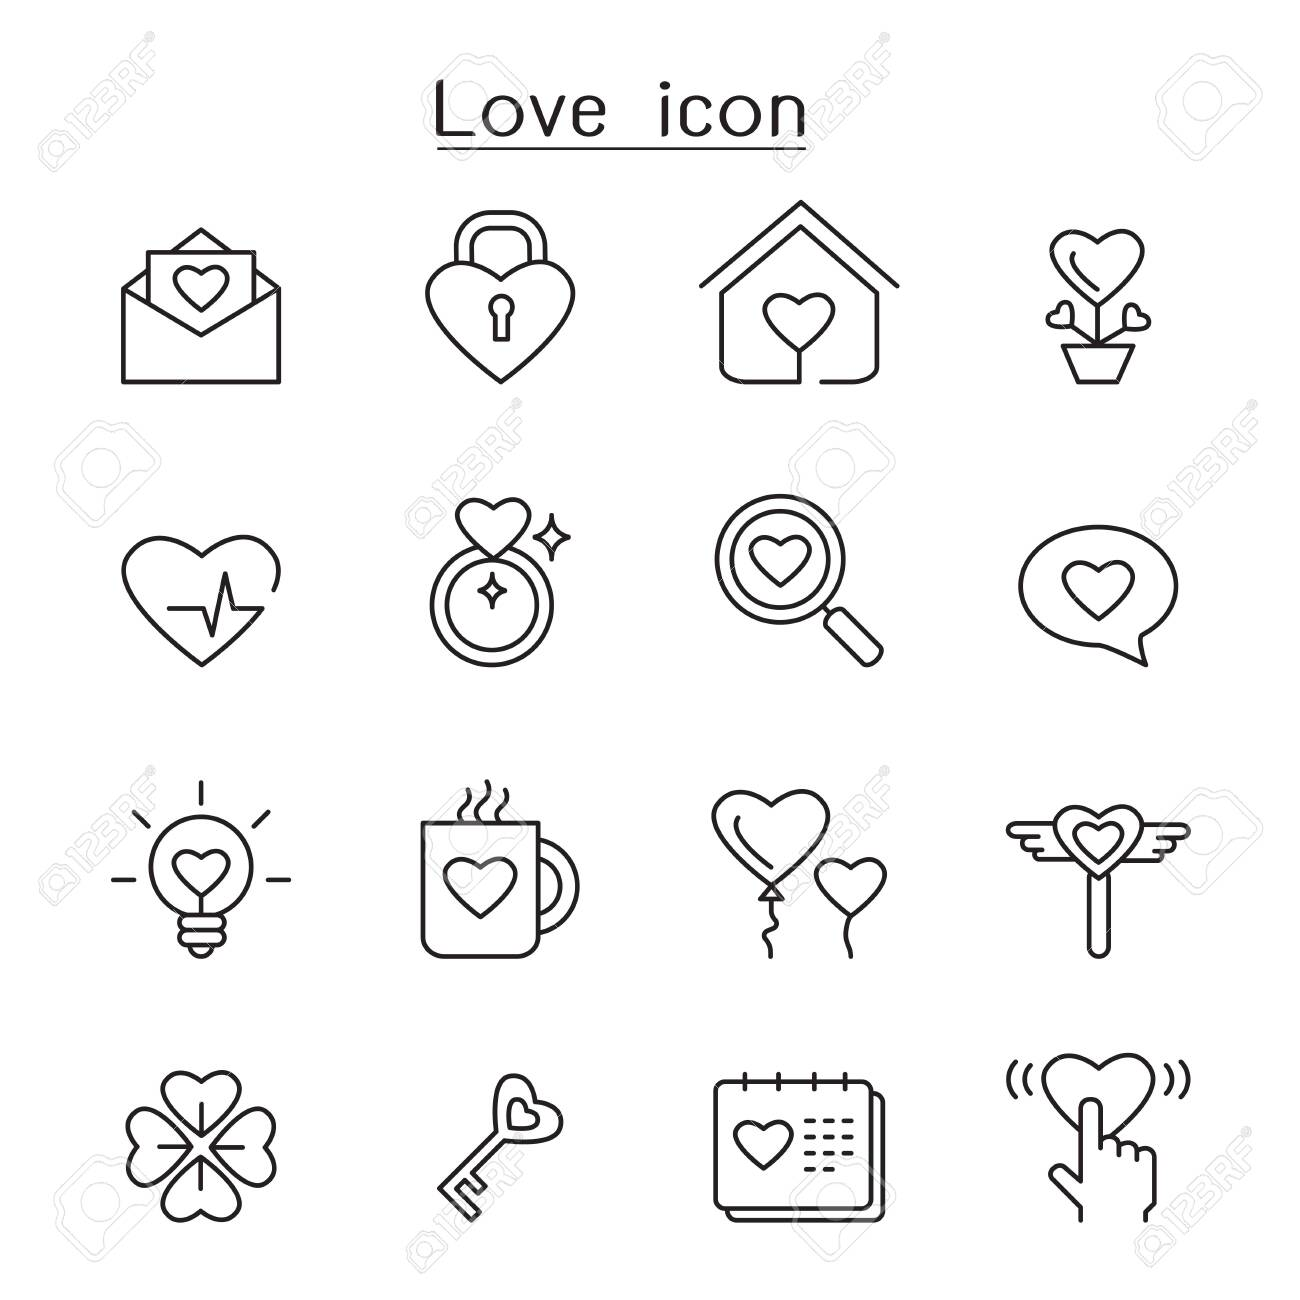 Love icon set in thin line style - 139350764